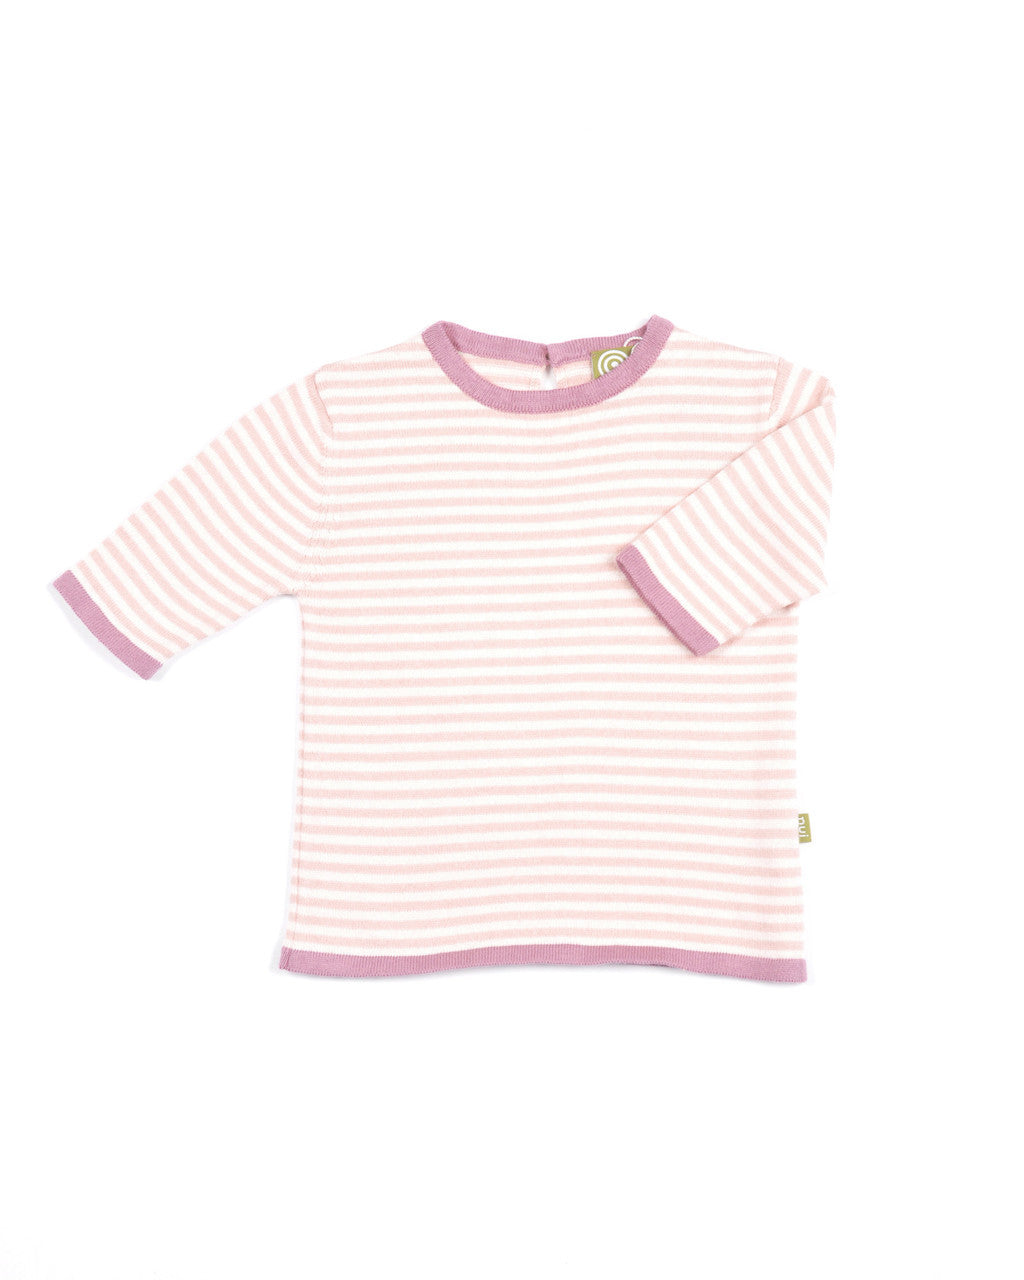 Dottie Top Pink Stripe